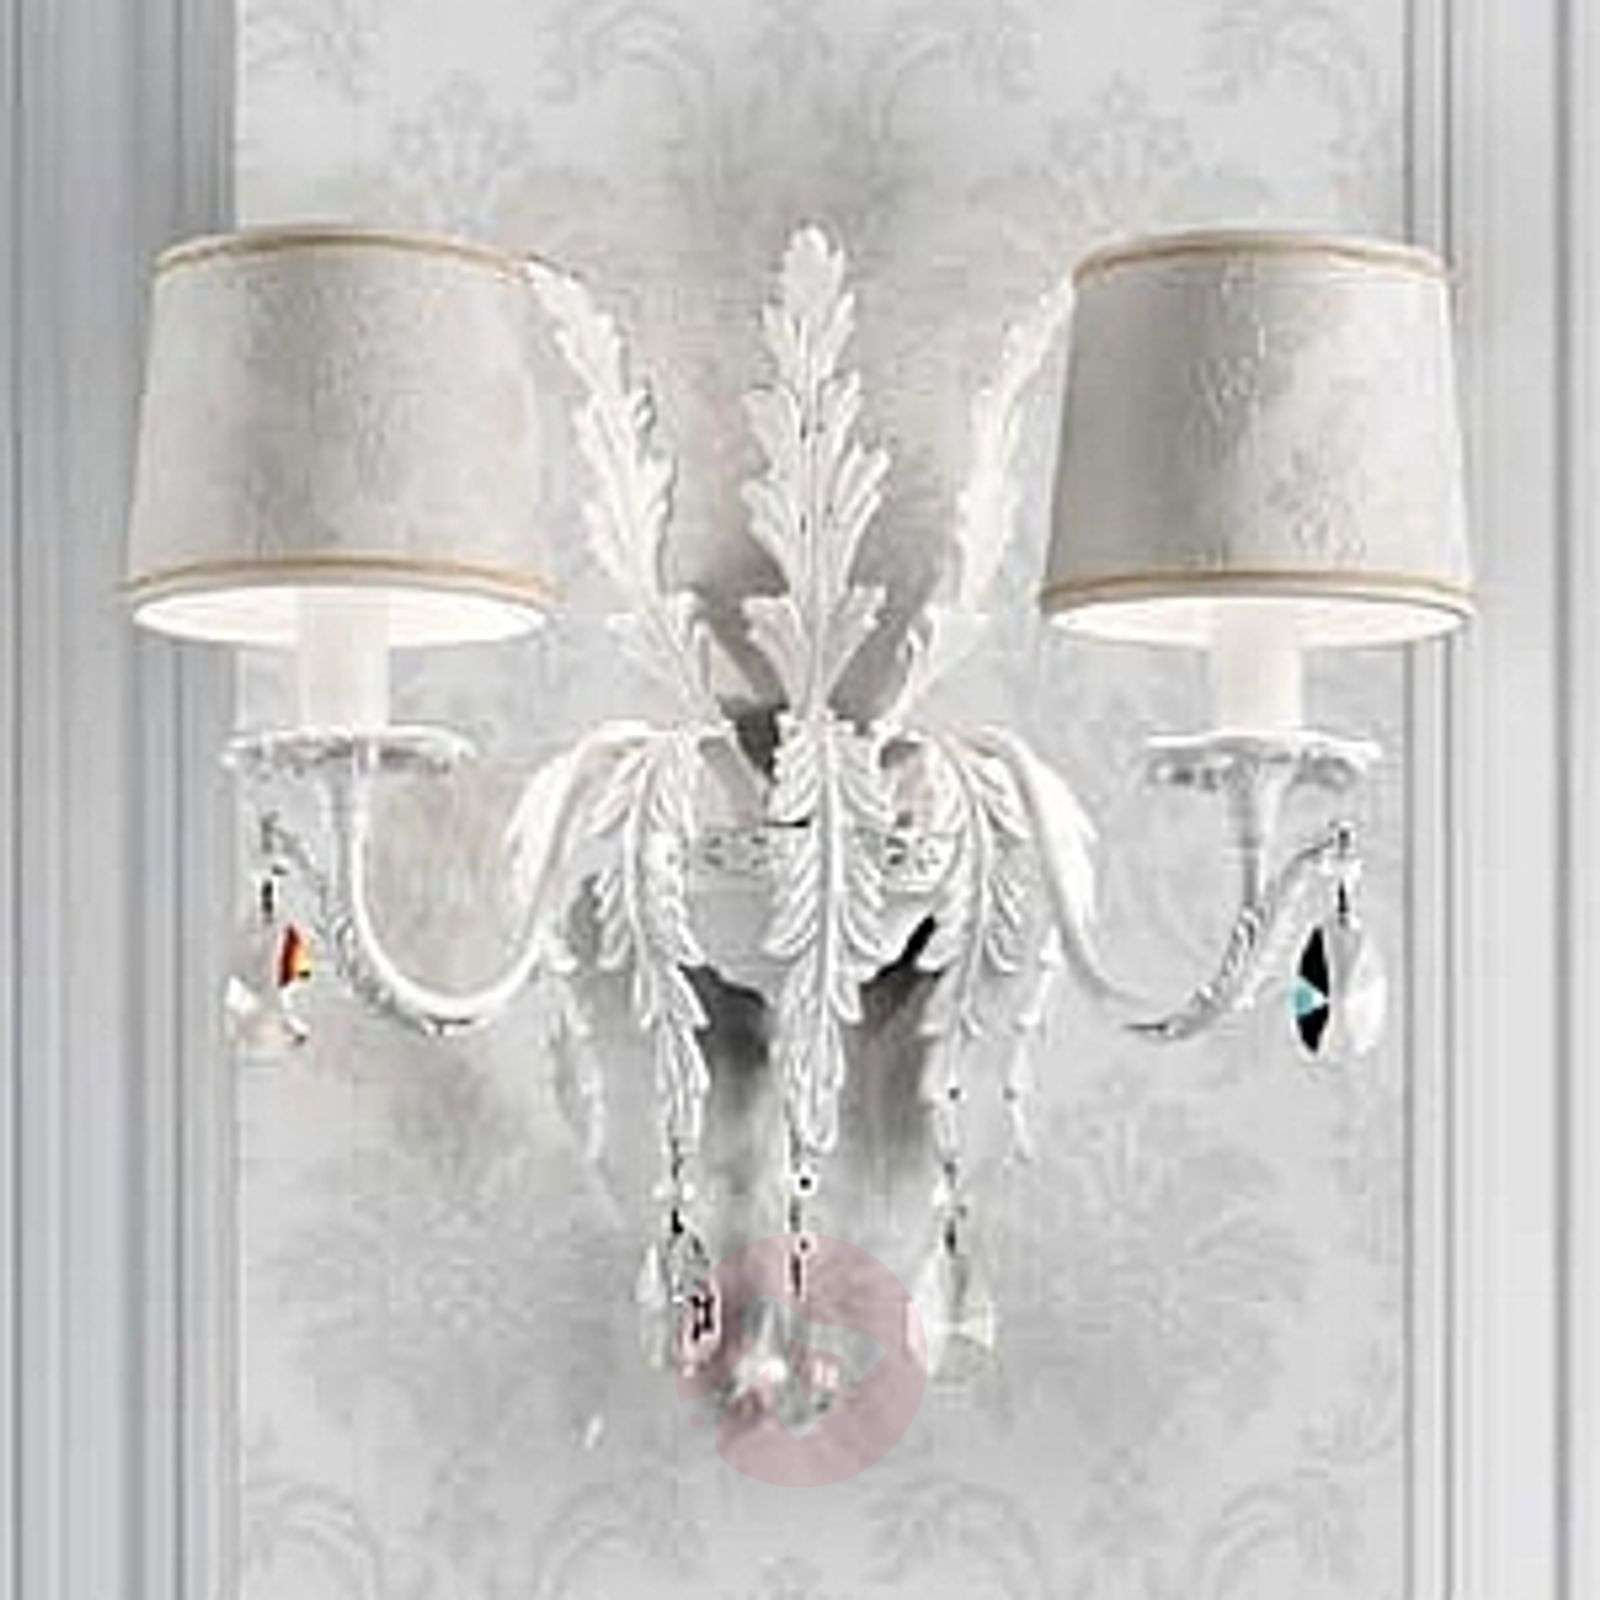 Angelis white wall light with Asfour crystals-6517134-01